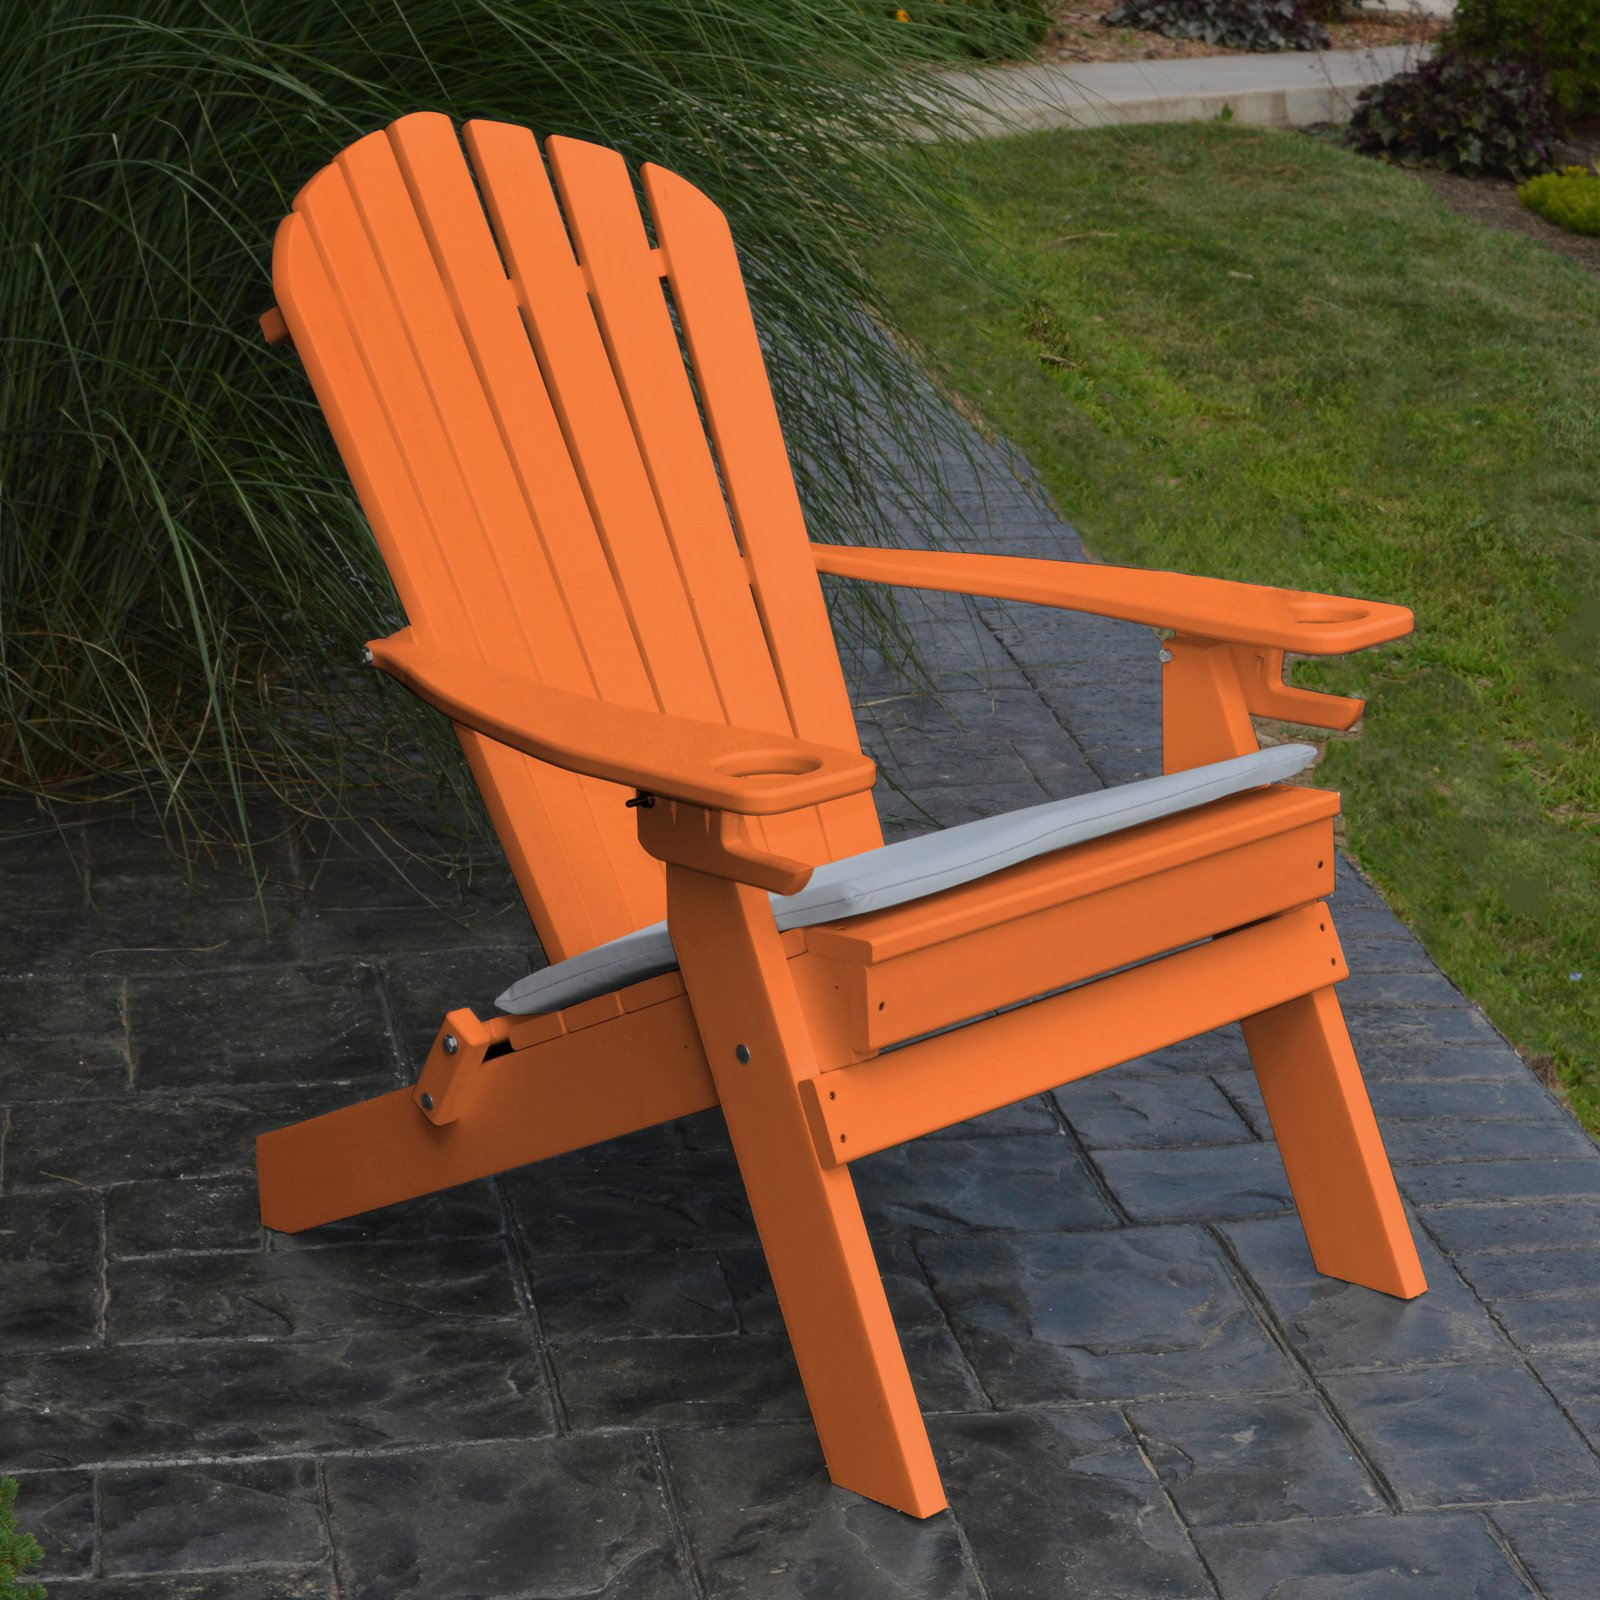 A & L Furniture Folding Recycled Plastic Adirondack Chair with 2 Cup Holders by A&L Furniture